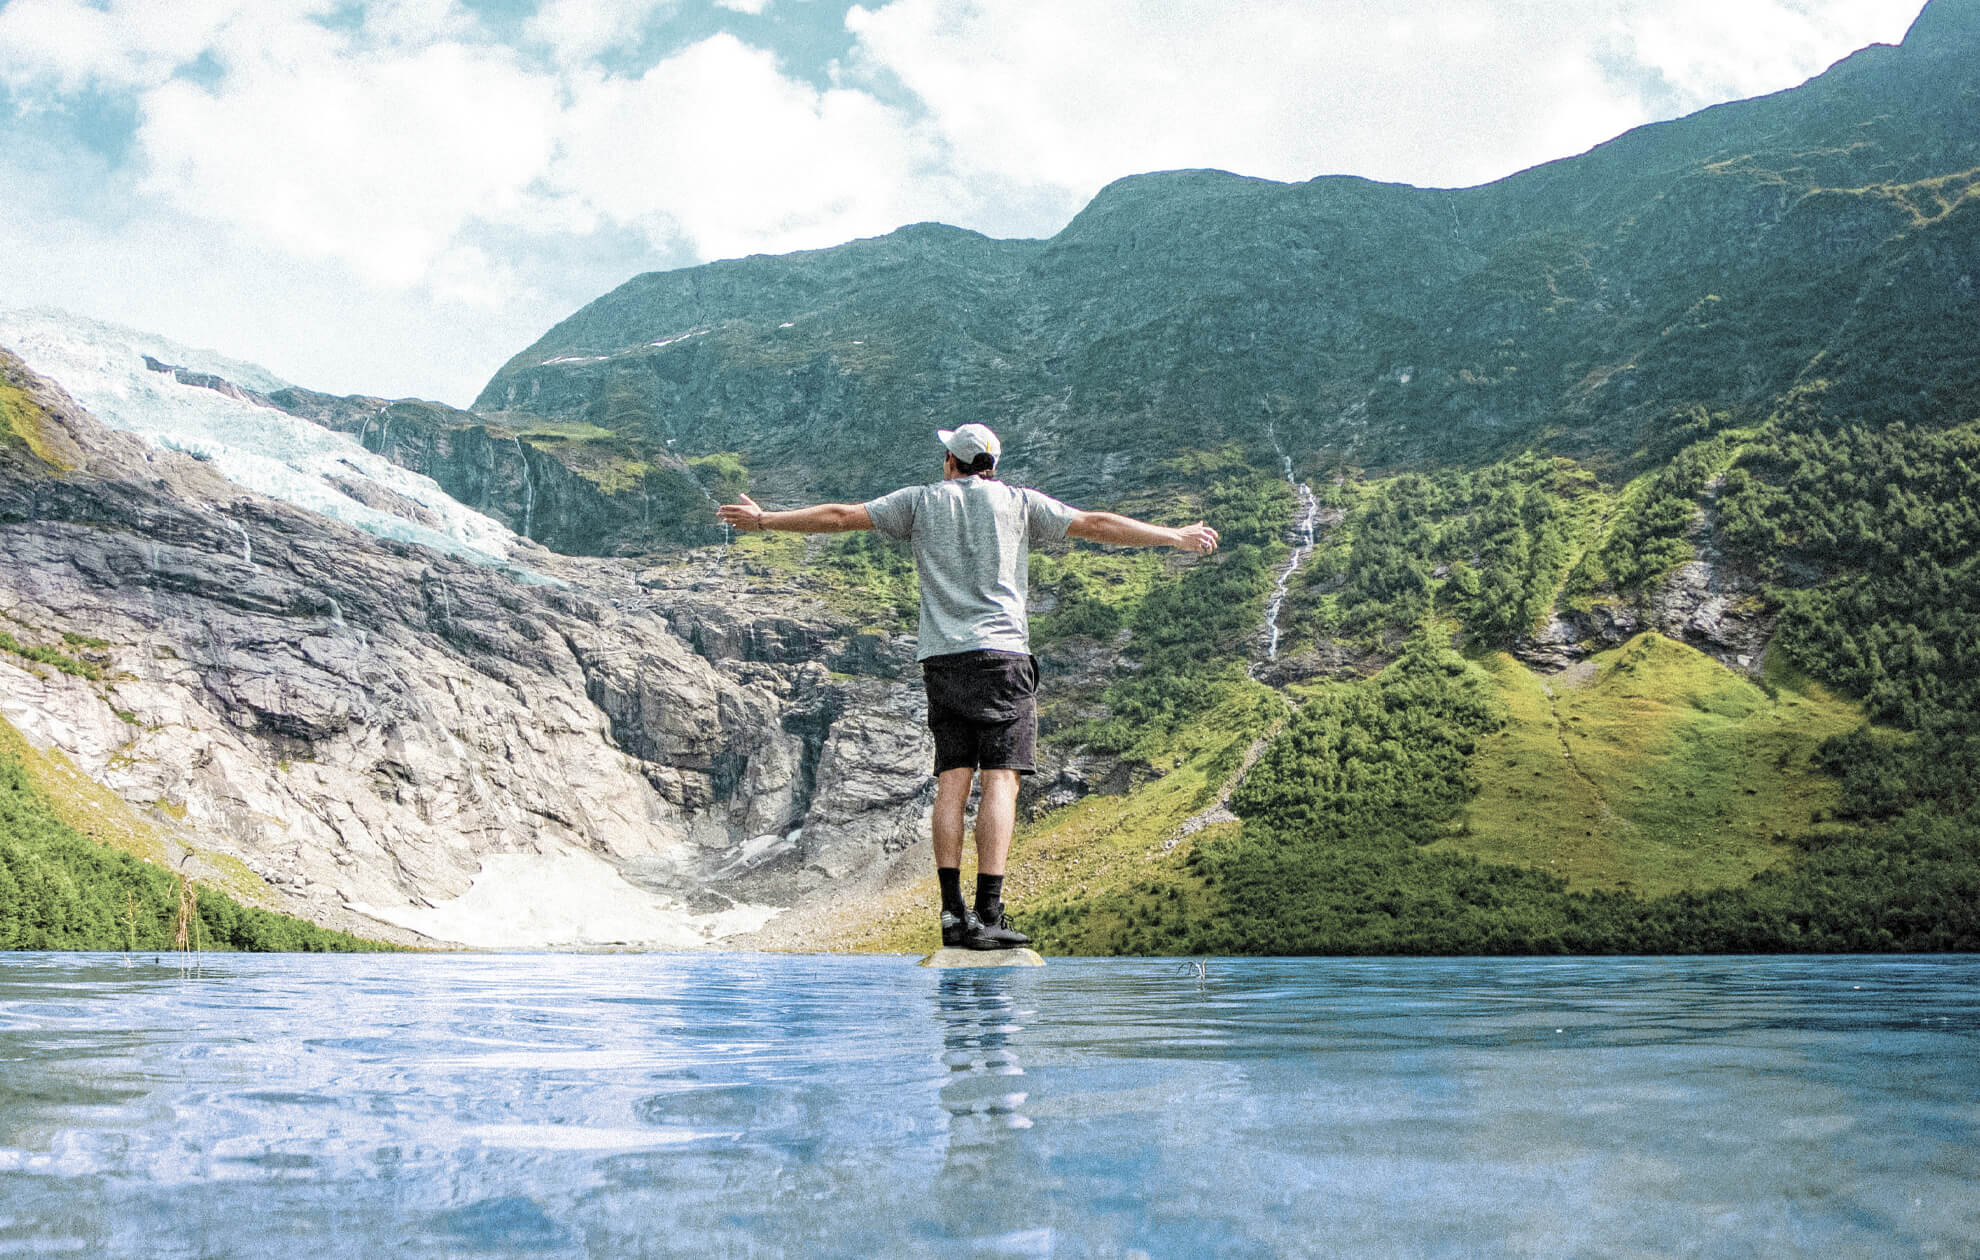 man standing arms outstretched on a rock in a river in front of a waterfall